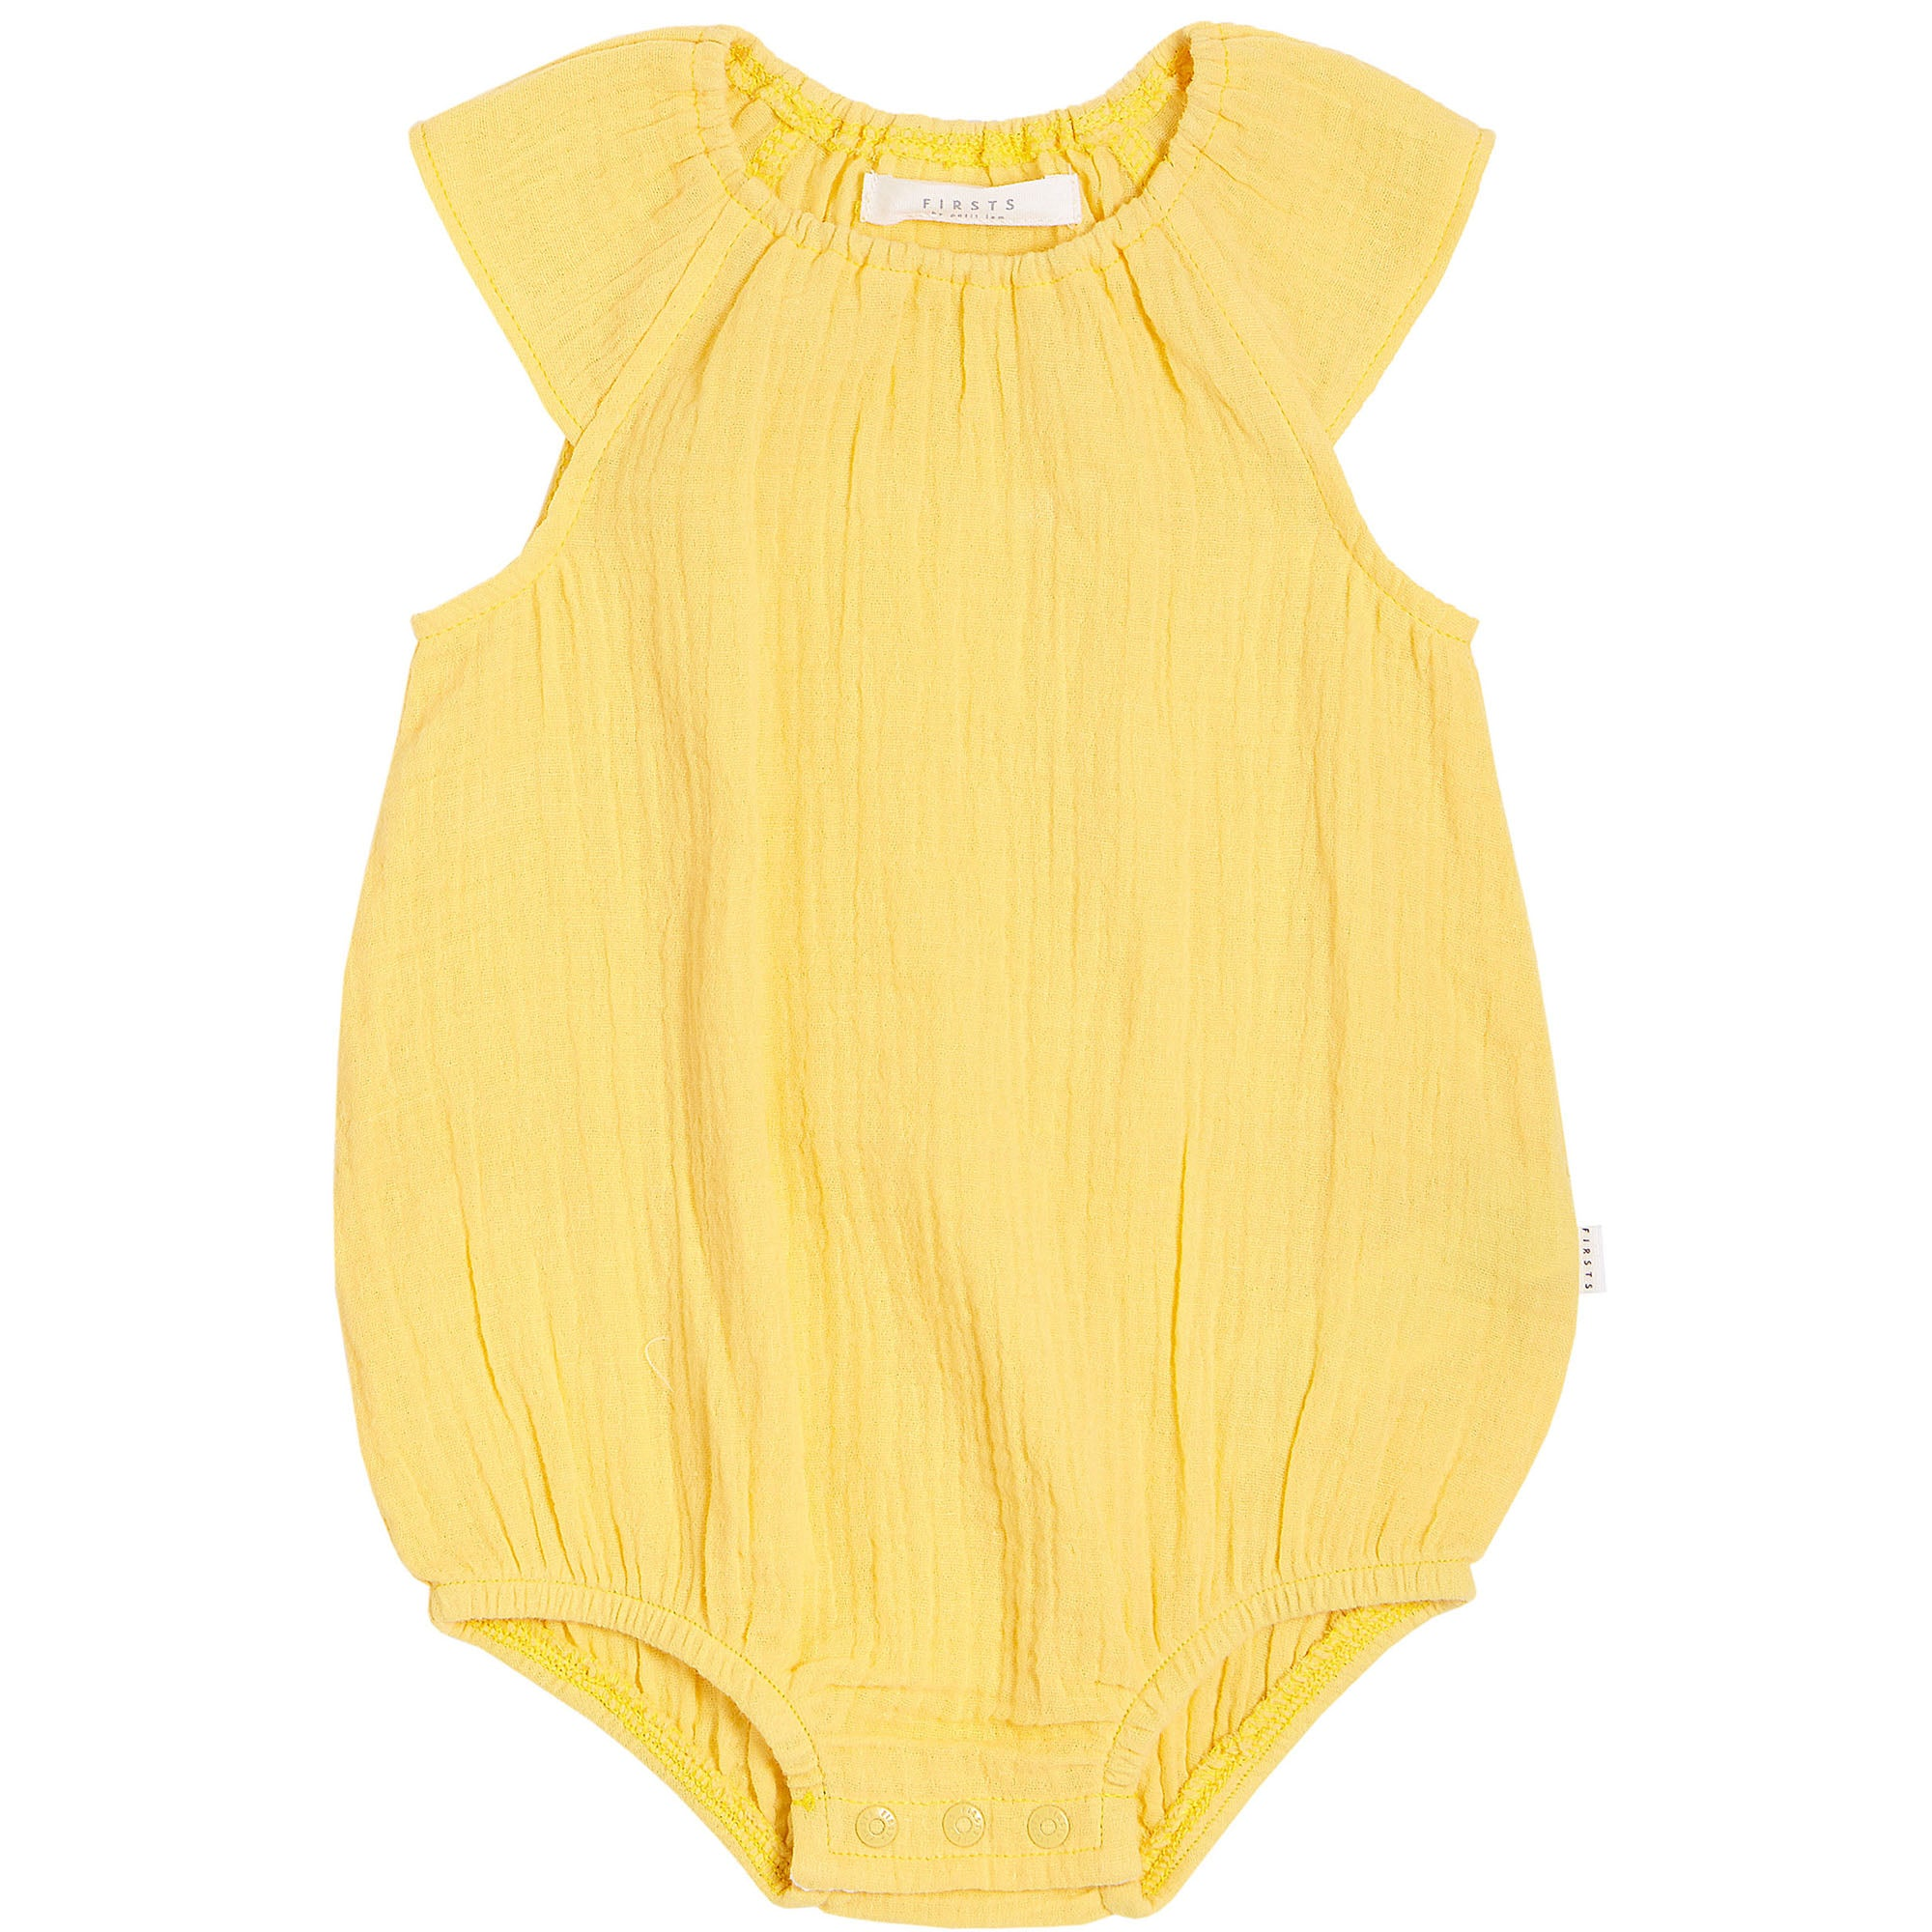 FIRSTS by Petit Lem Organic Muslin Bubble Romper - Sole Mio